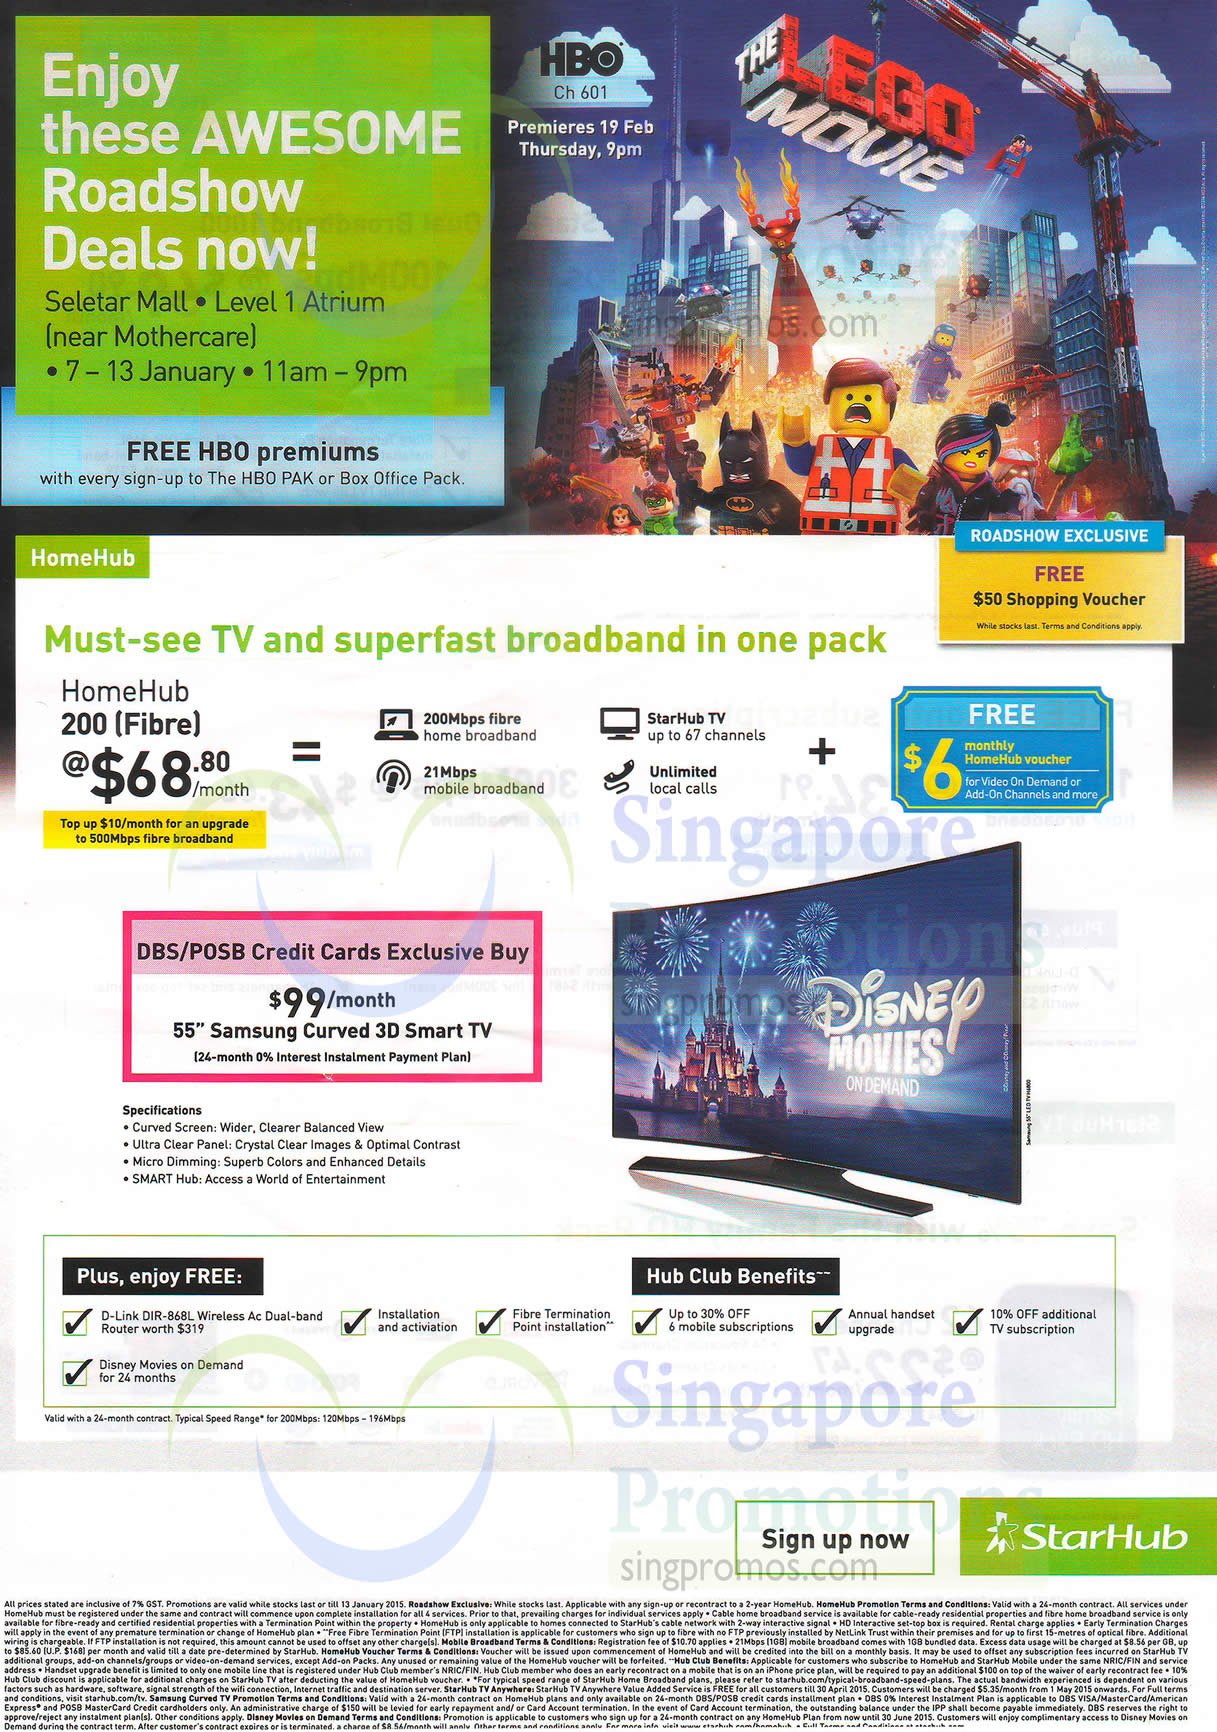 11 Jan Starhub Seletar Mall Roadshow HomeHub 200 Fibre Free HBO